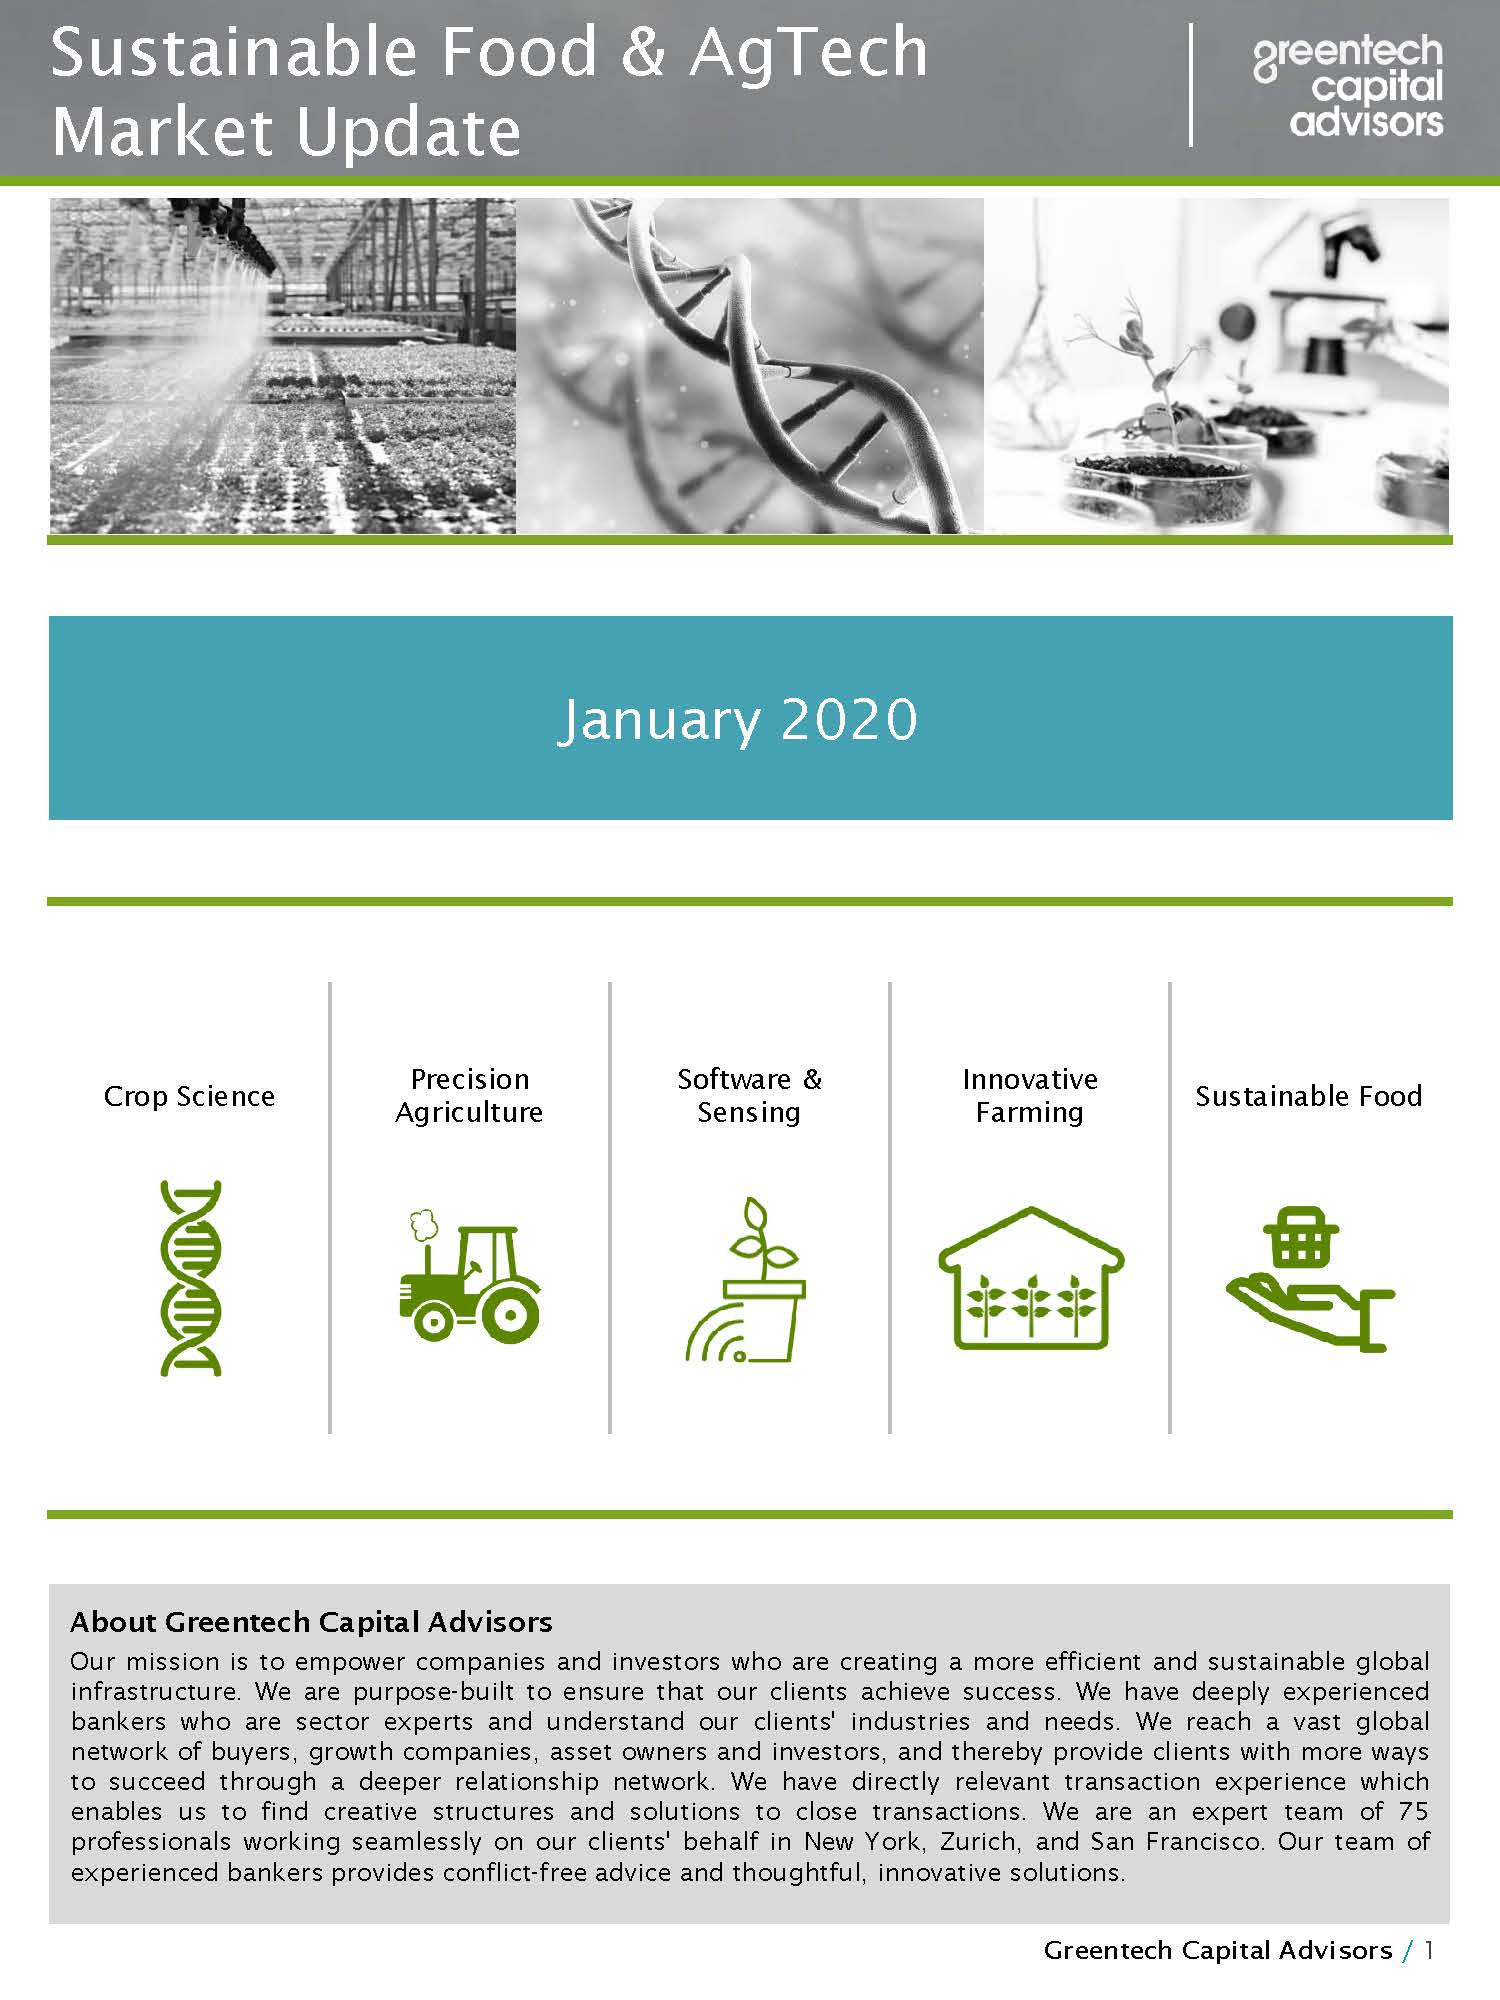 Sustainable Food & AgTech Market Update Newsletter - January 2020